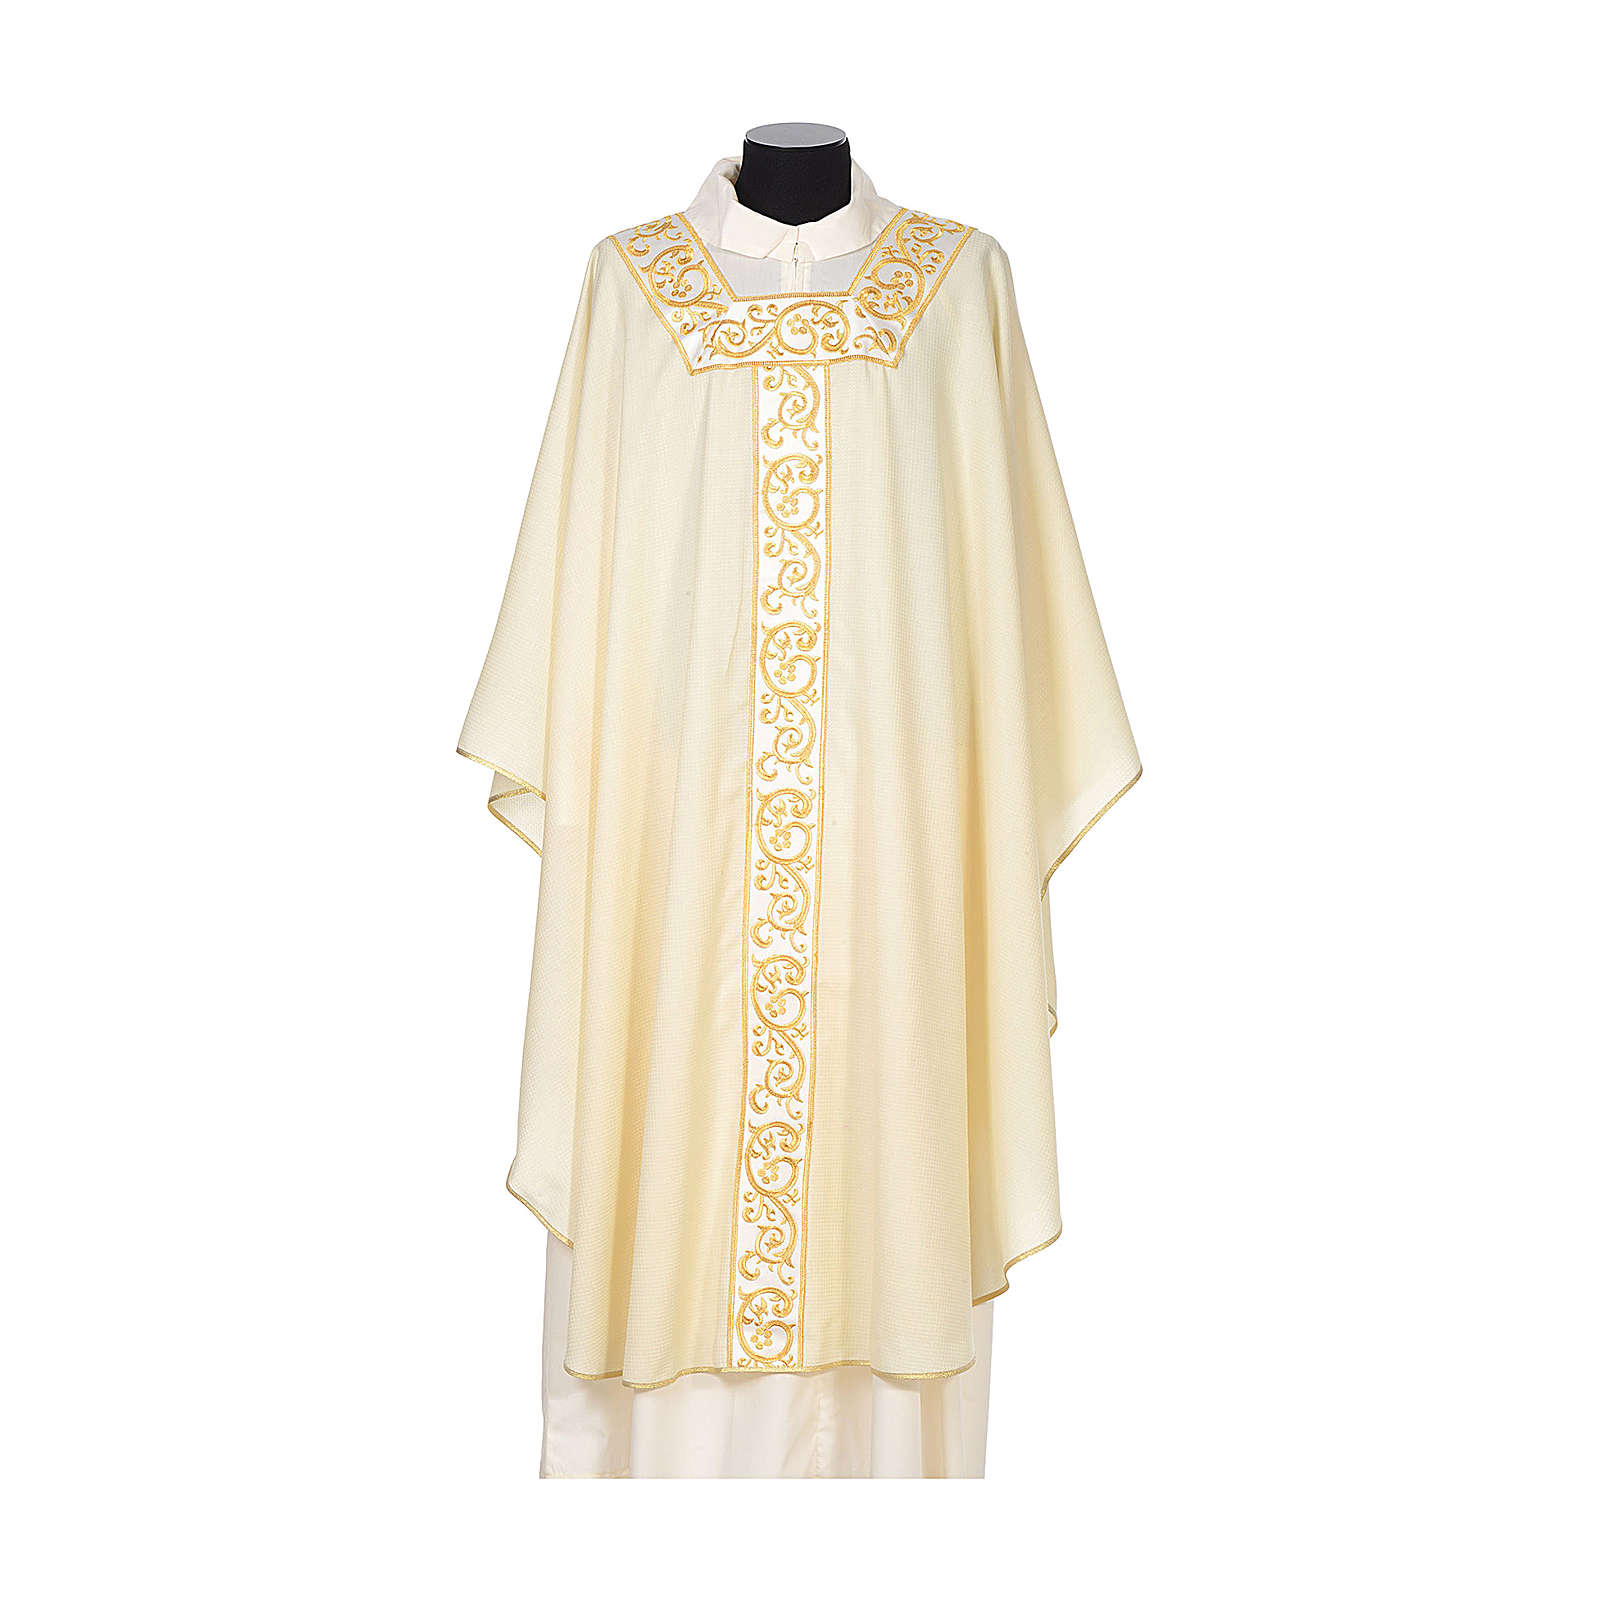 Chasuble 100% wool textured fabric with decorated neckline and gallon 4